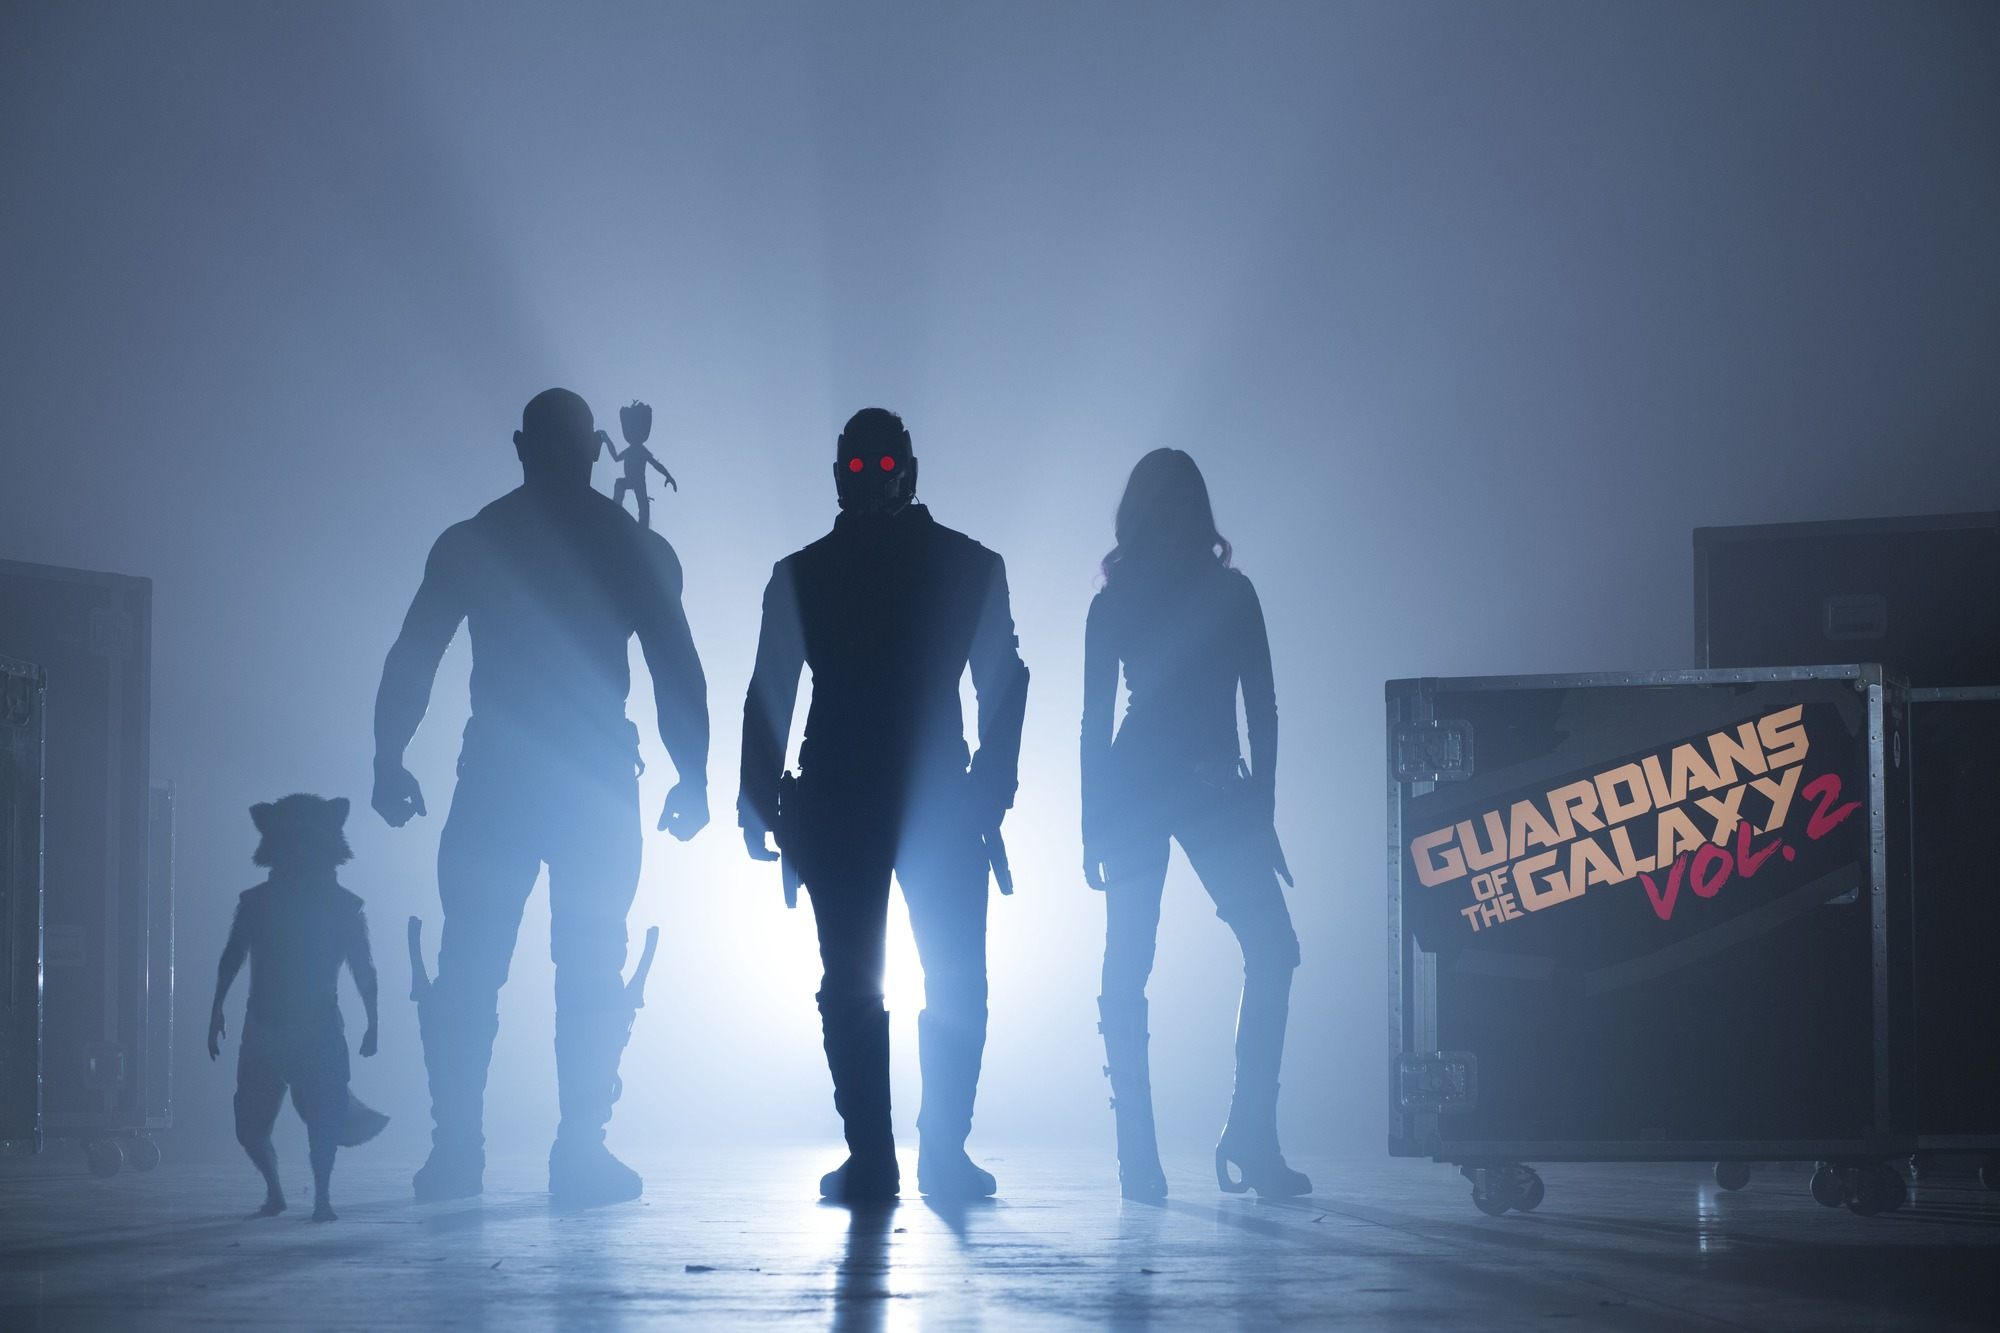 Marvel's 'Guardians of the Galaxy Vol. 2' Begins Principal Photography